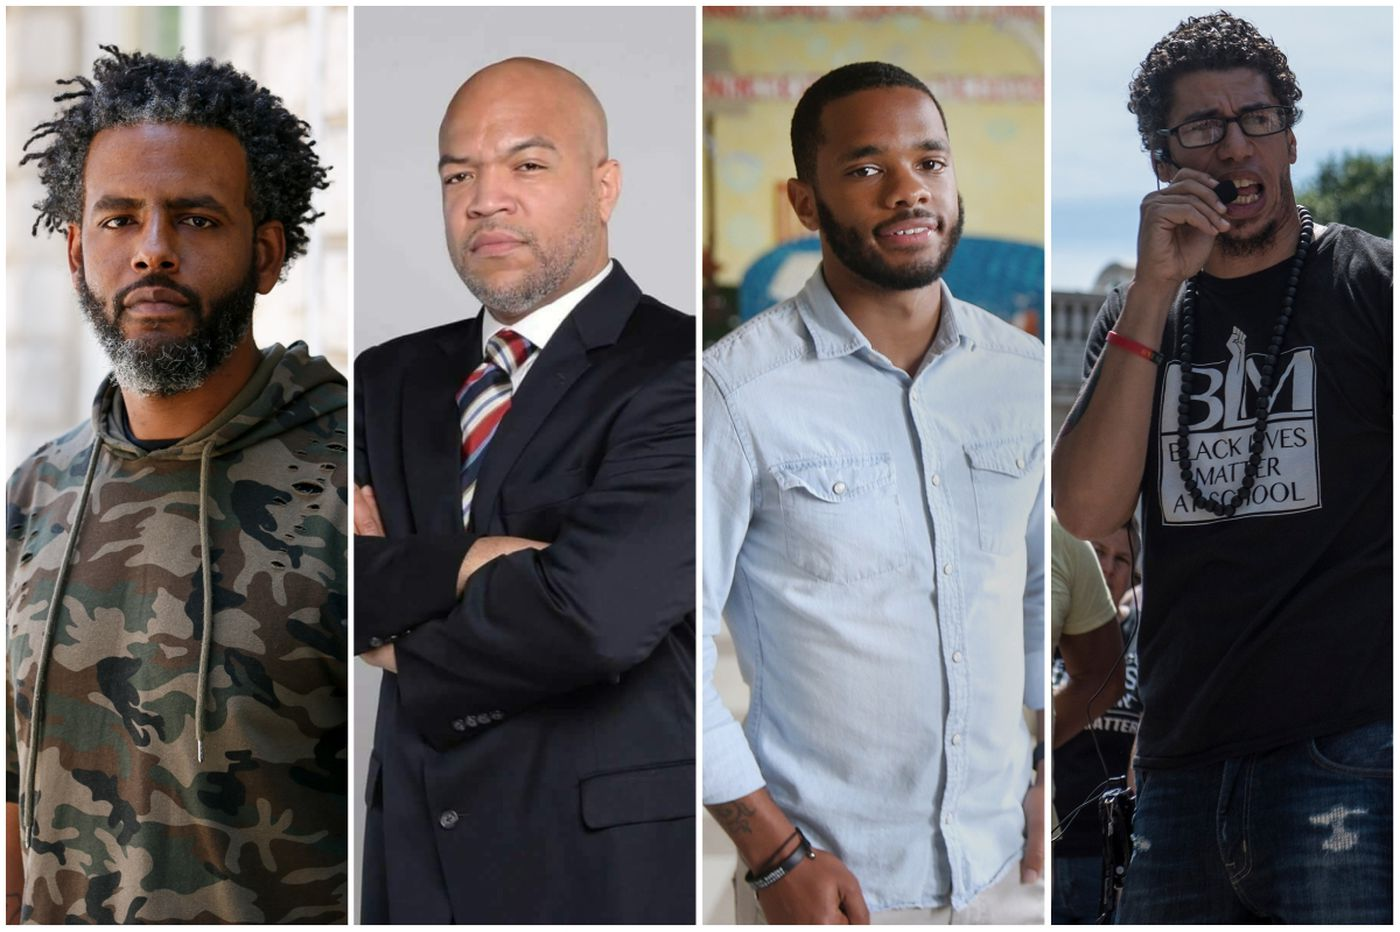 Four black, male Philly educators — all victims of racial profiling — tell their stories